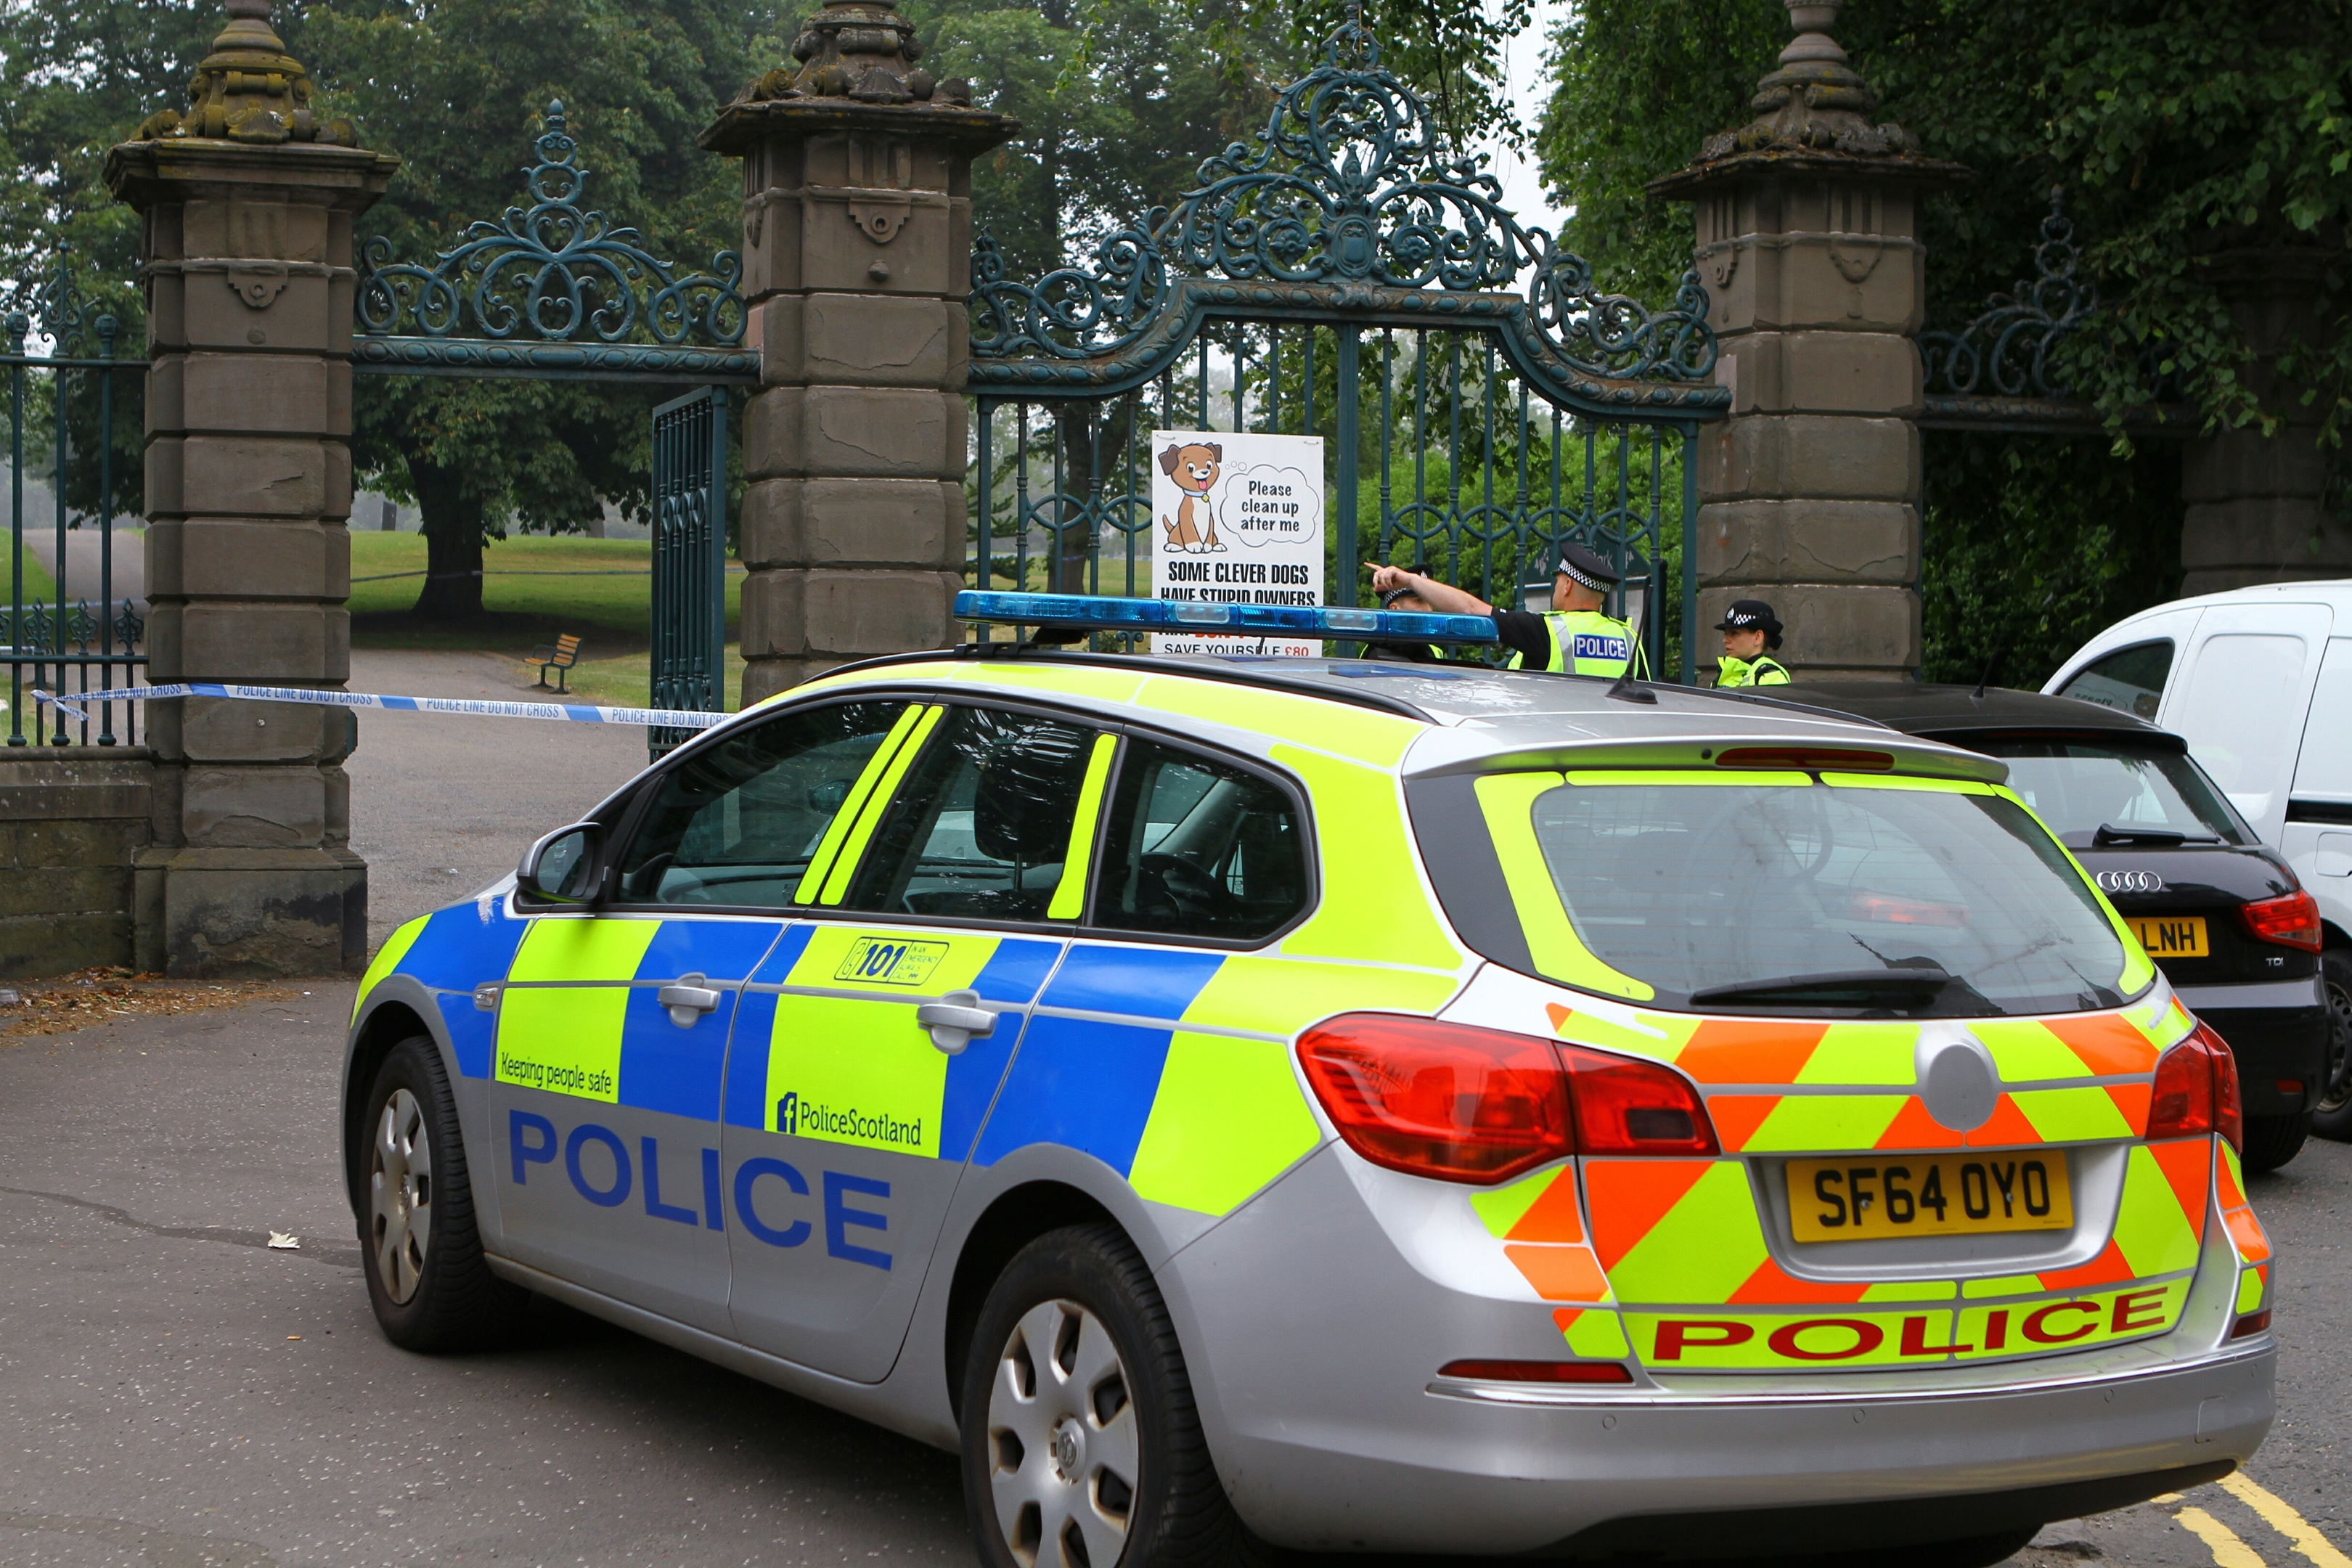 Police sealed off Baxter Park following the attack last week.